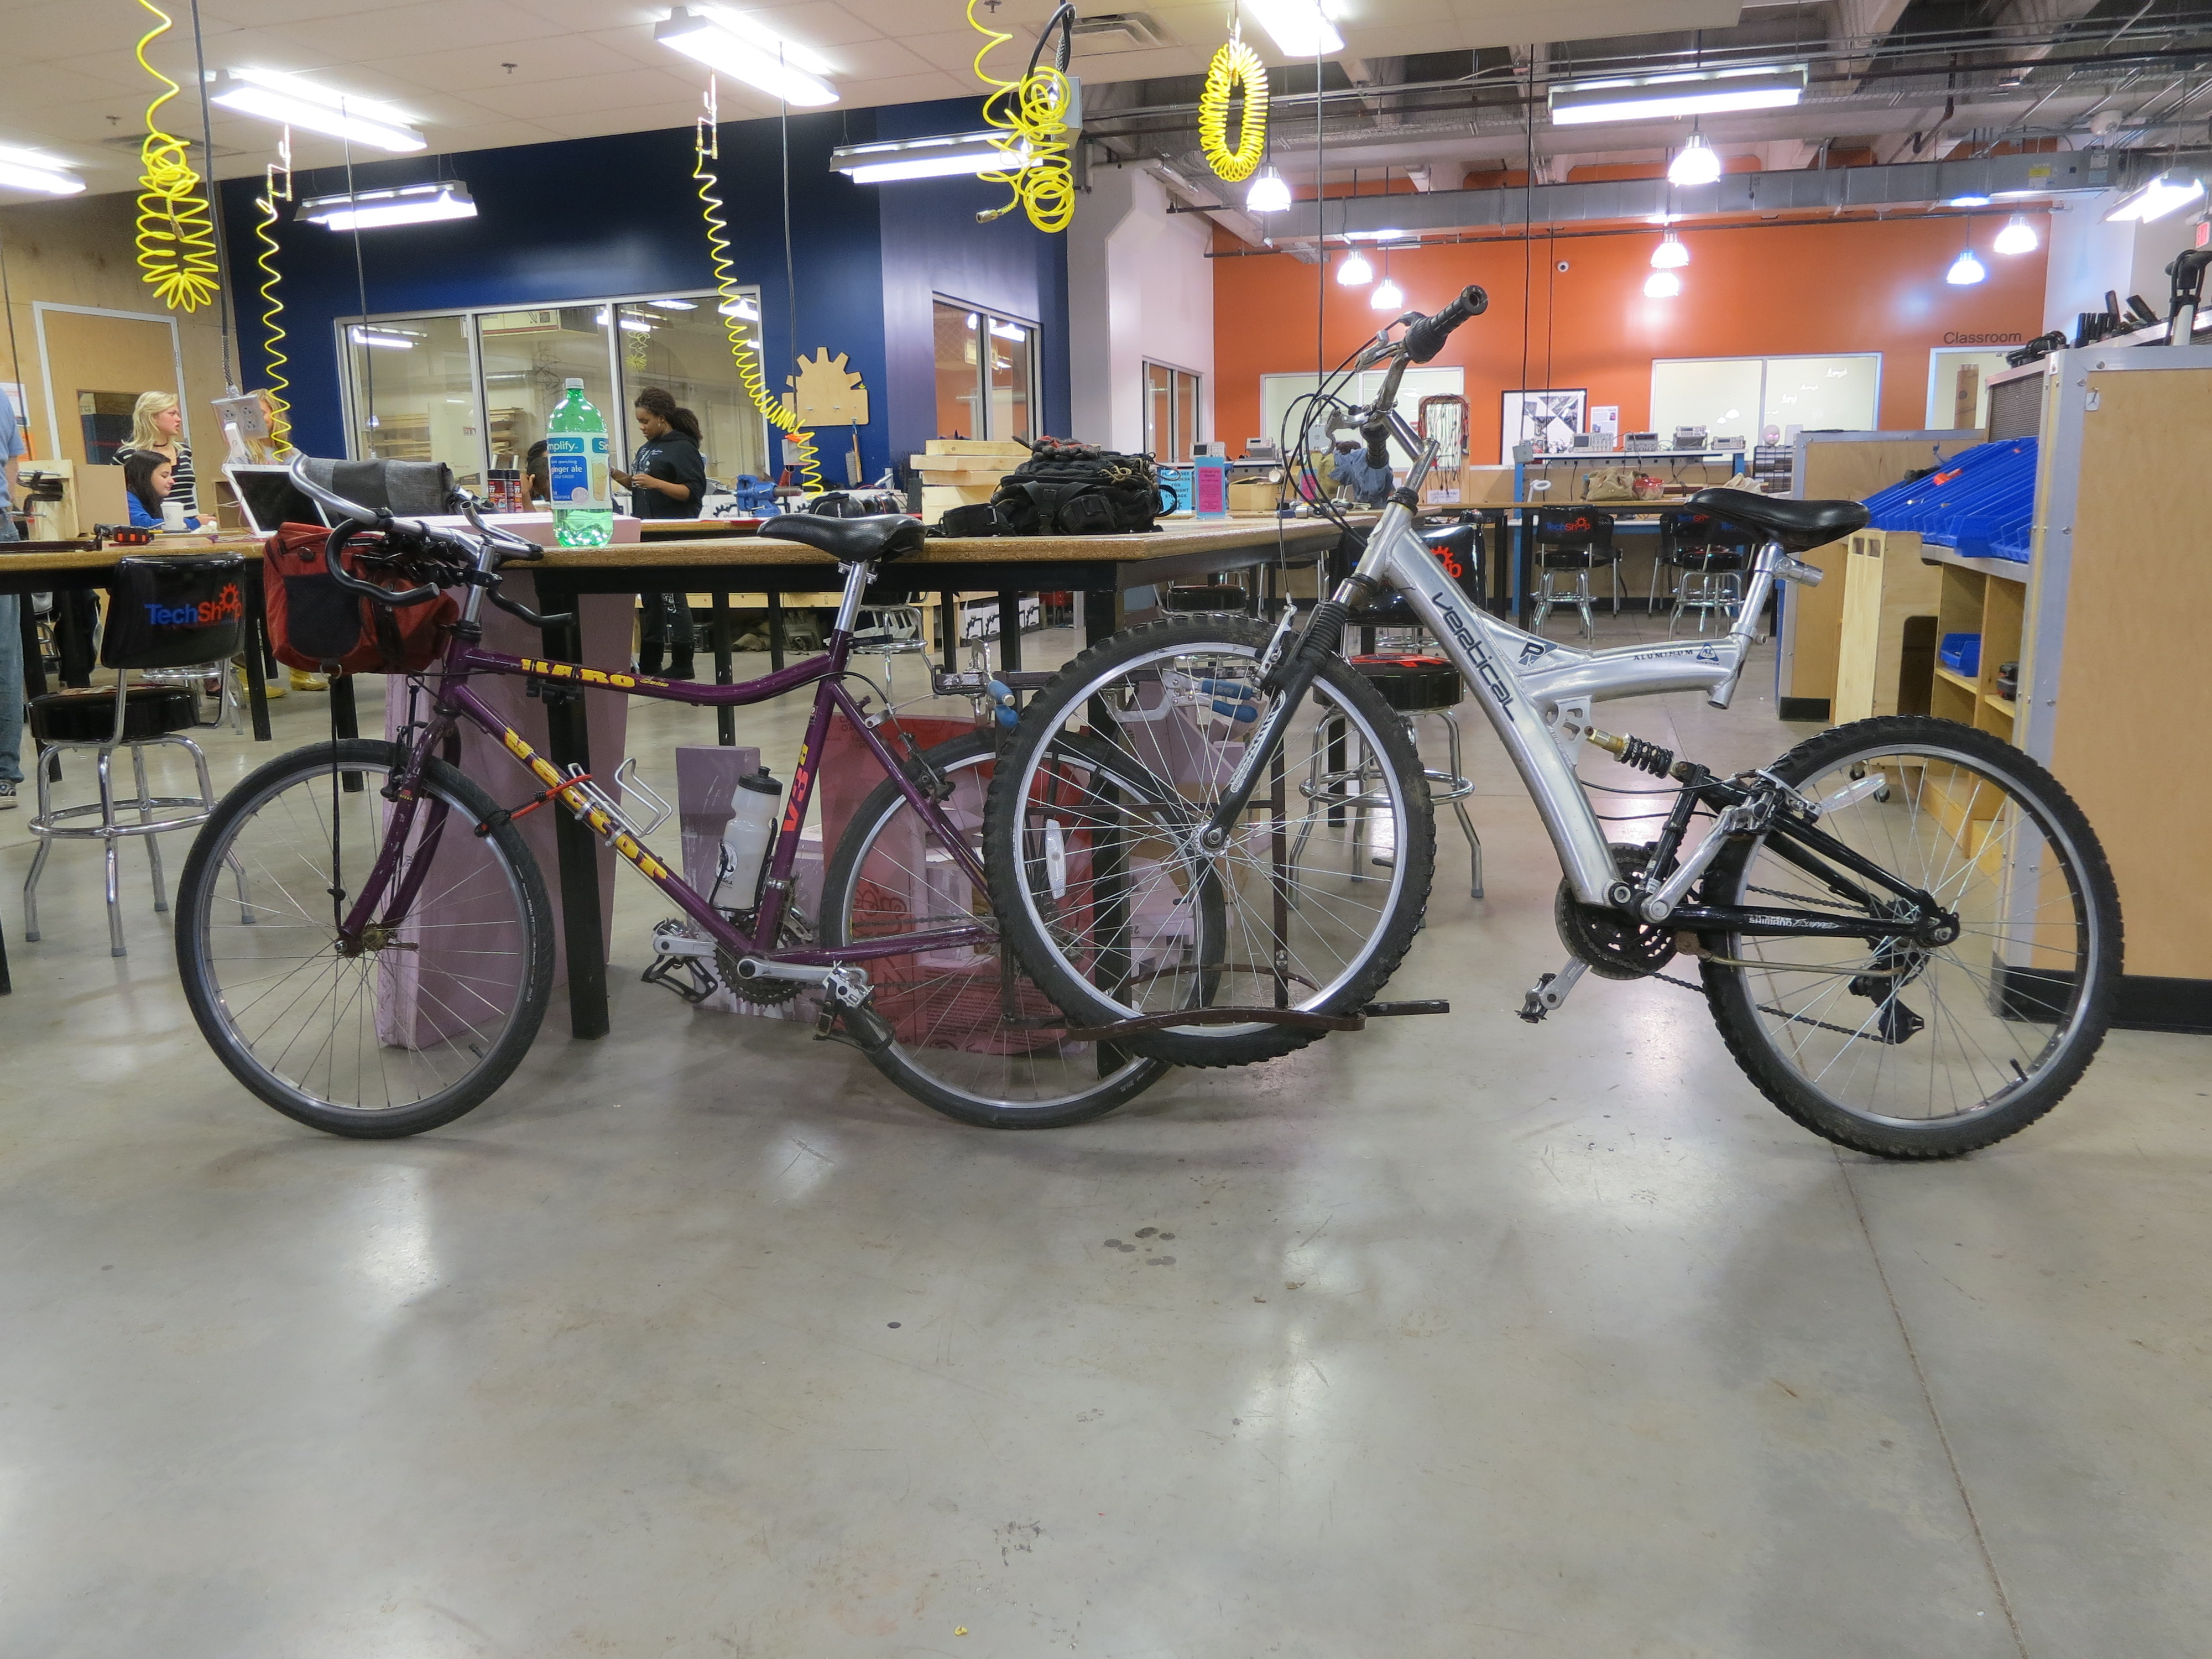 Picture of Bicycle Tow Rack - I Made It at TechShop!